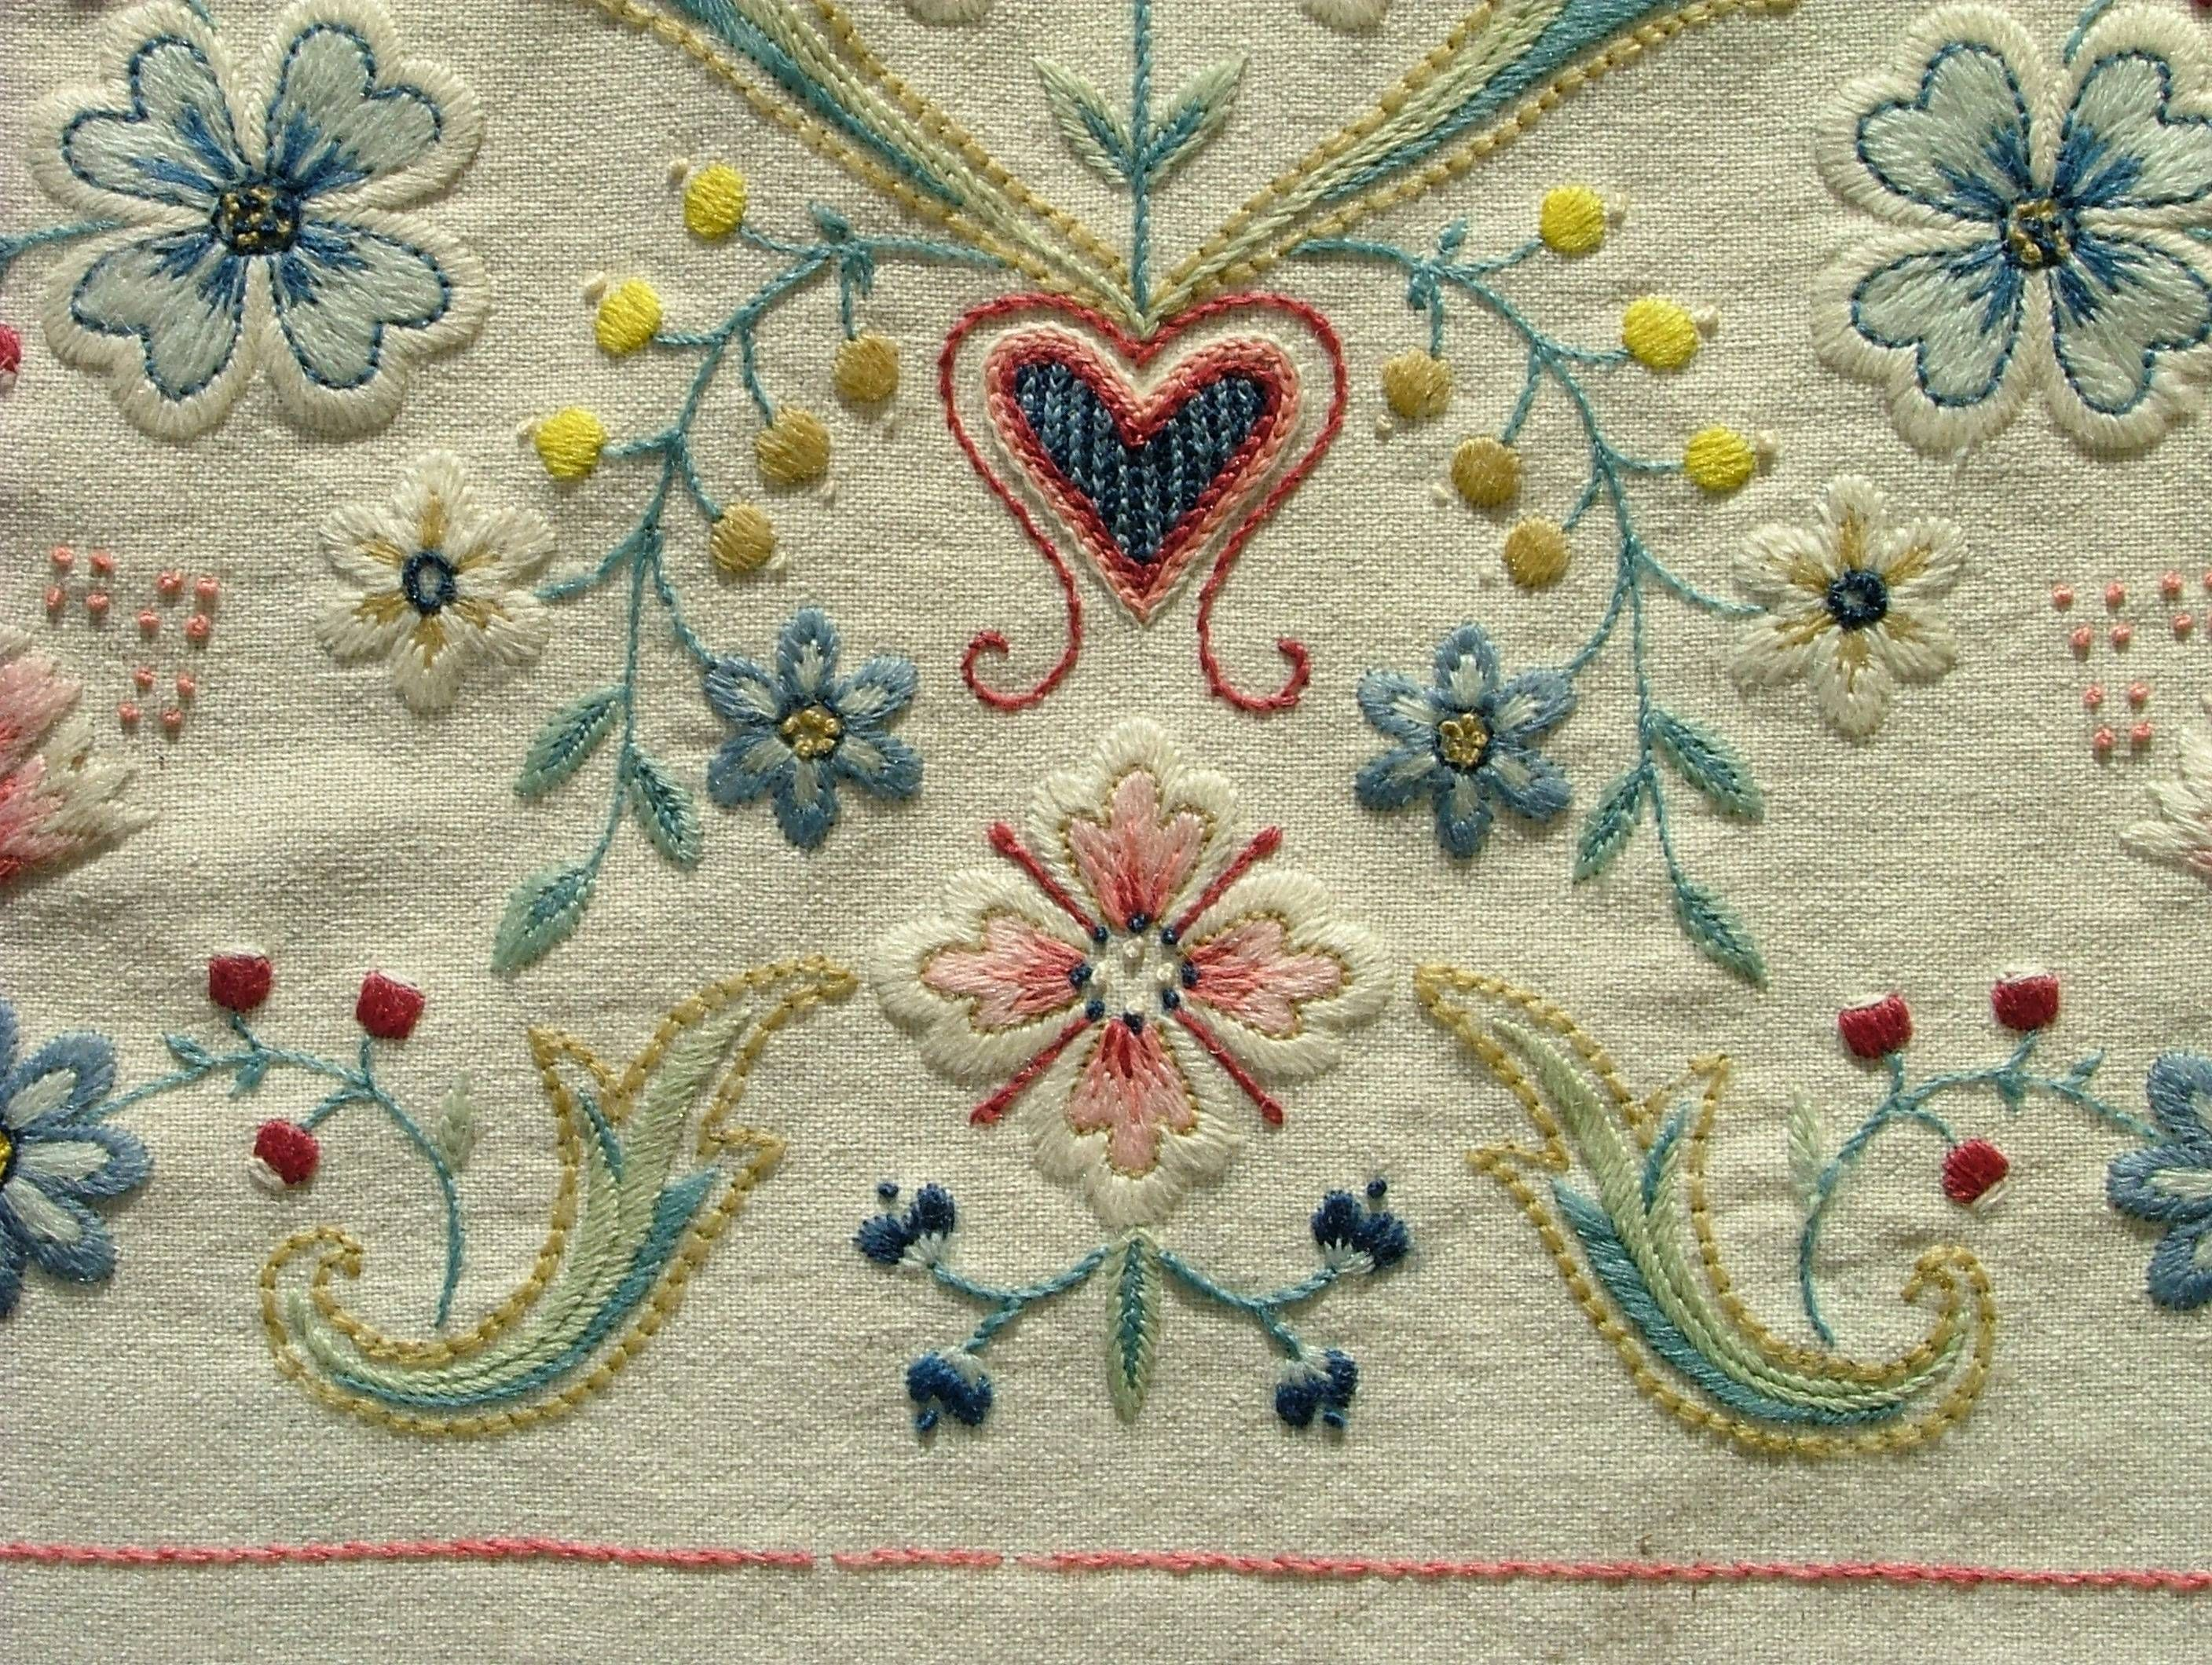 Yllebroderier Hos Moa Embroidery Wool Embroidery And Needlework